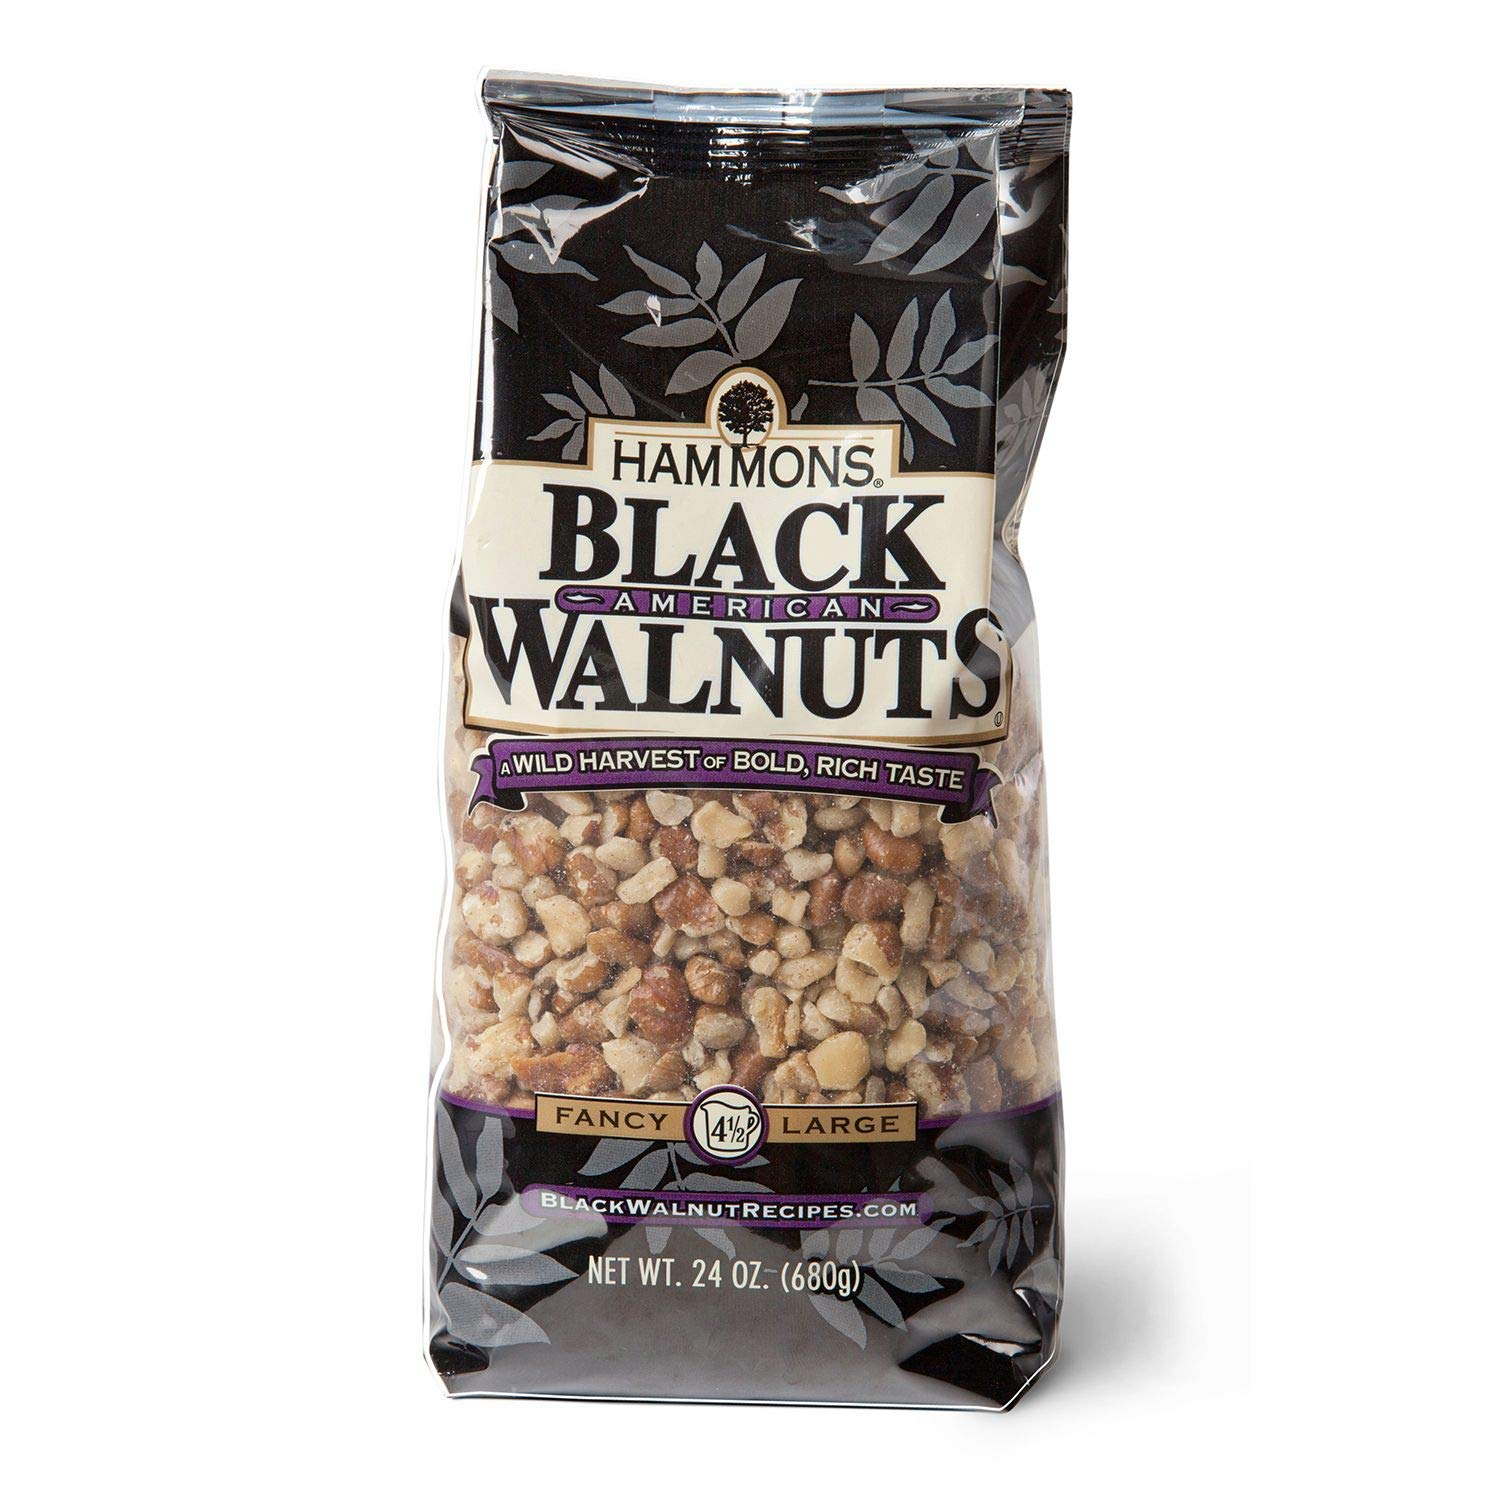 Hammons Black Walnuts - 24 oz. bags. (pack of 4) A1 by Store - 383